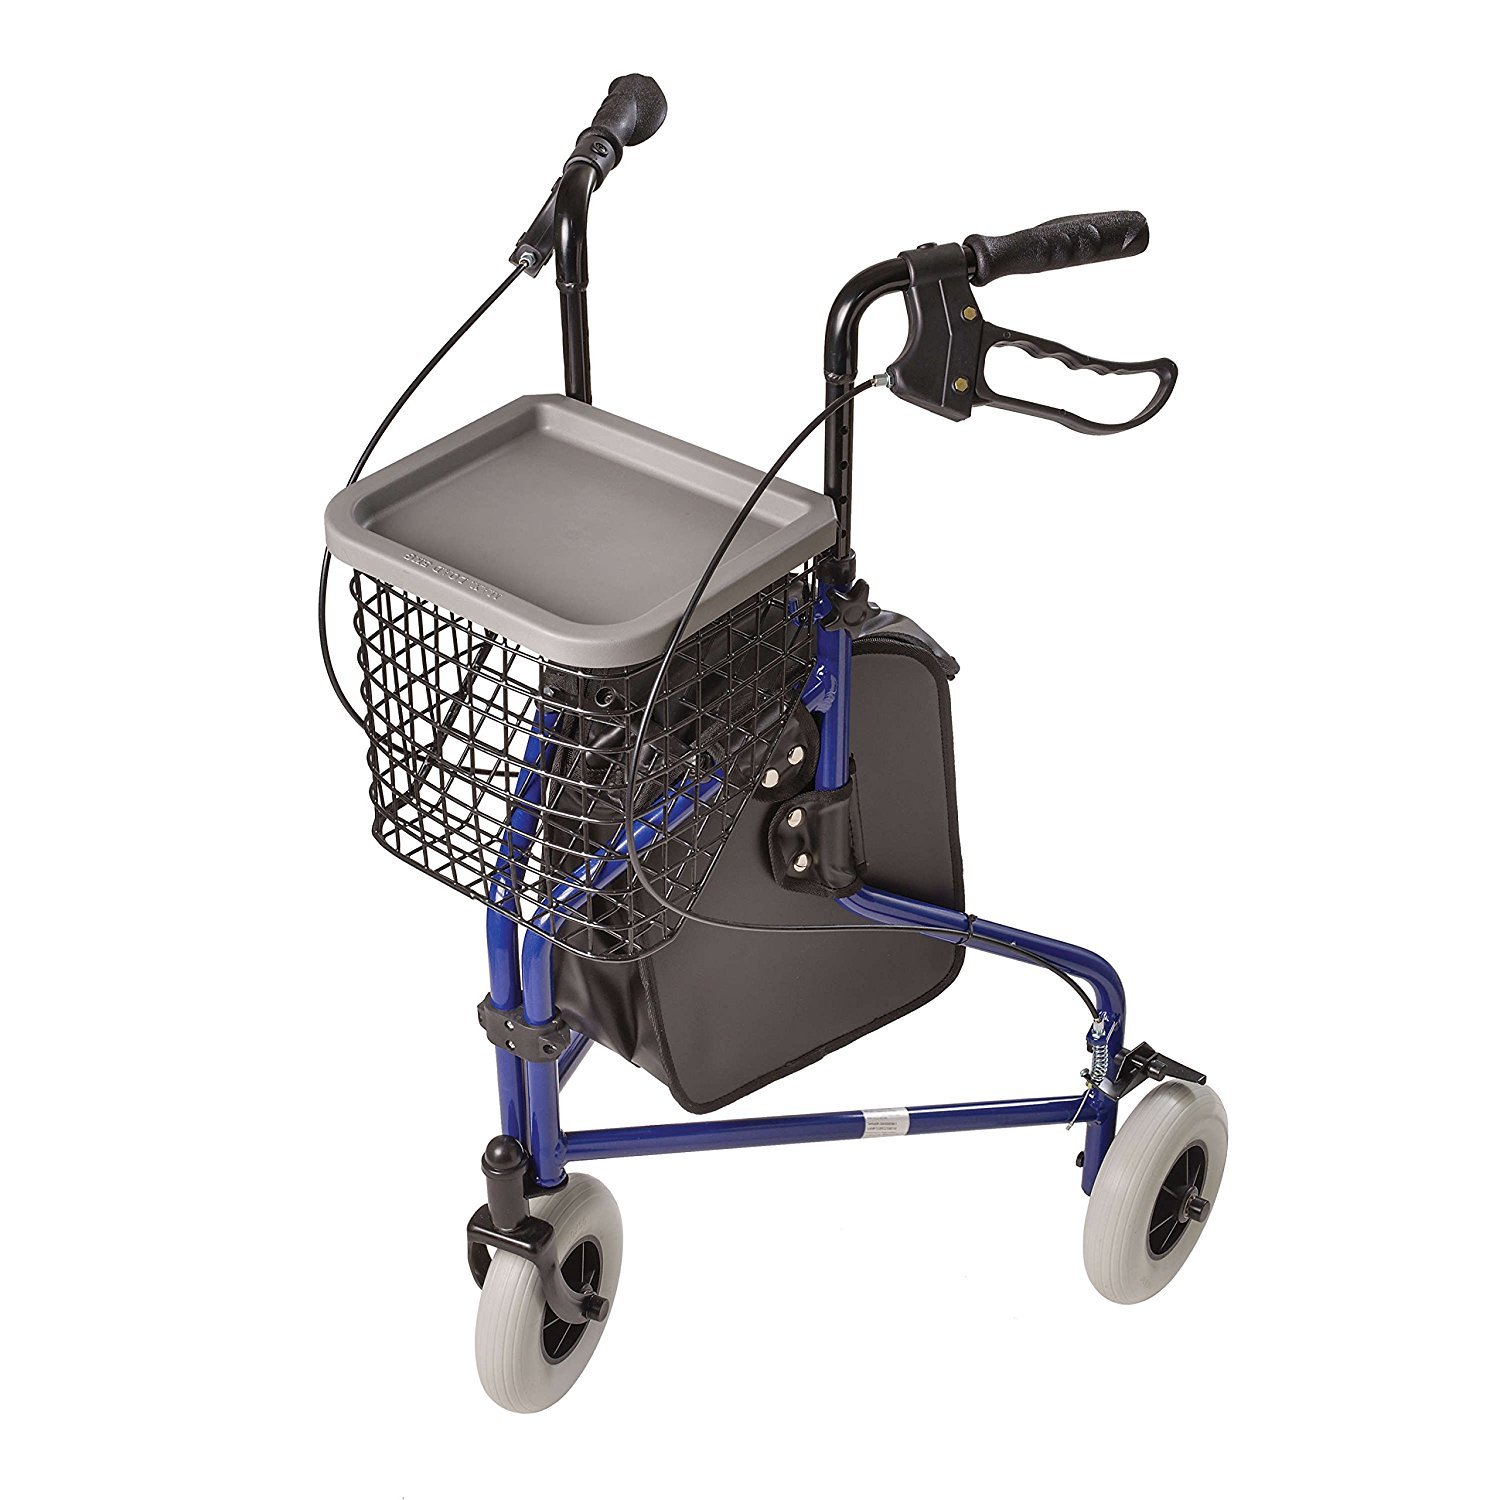 Caremax Rollator, Three Wheel Walking Aid CRX with Storage Bag and Basket by Caremax Medical